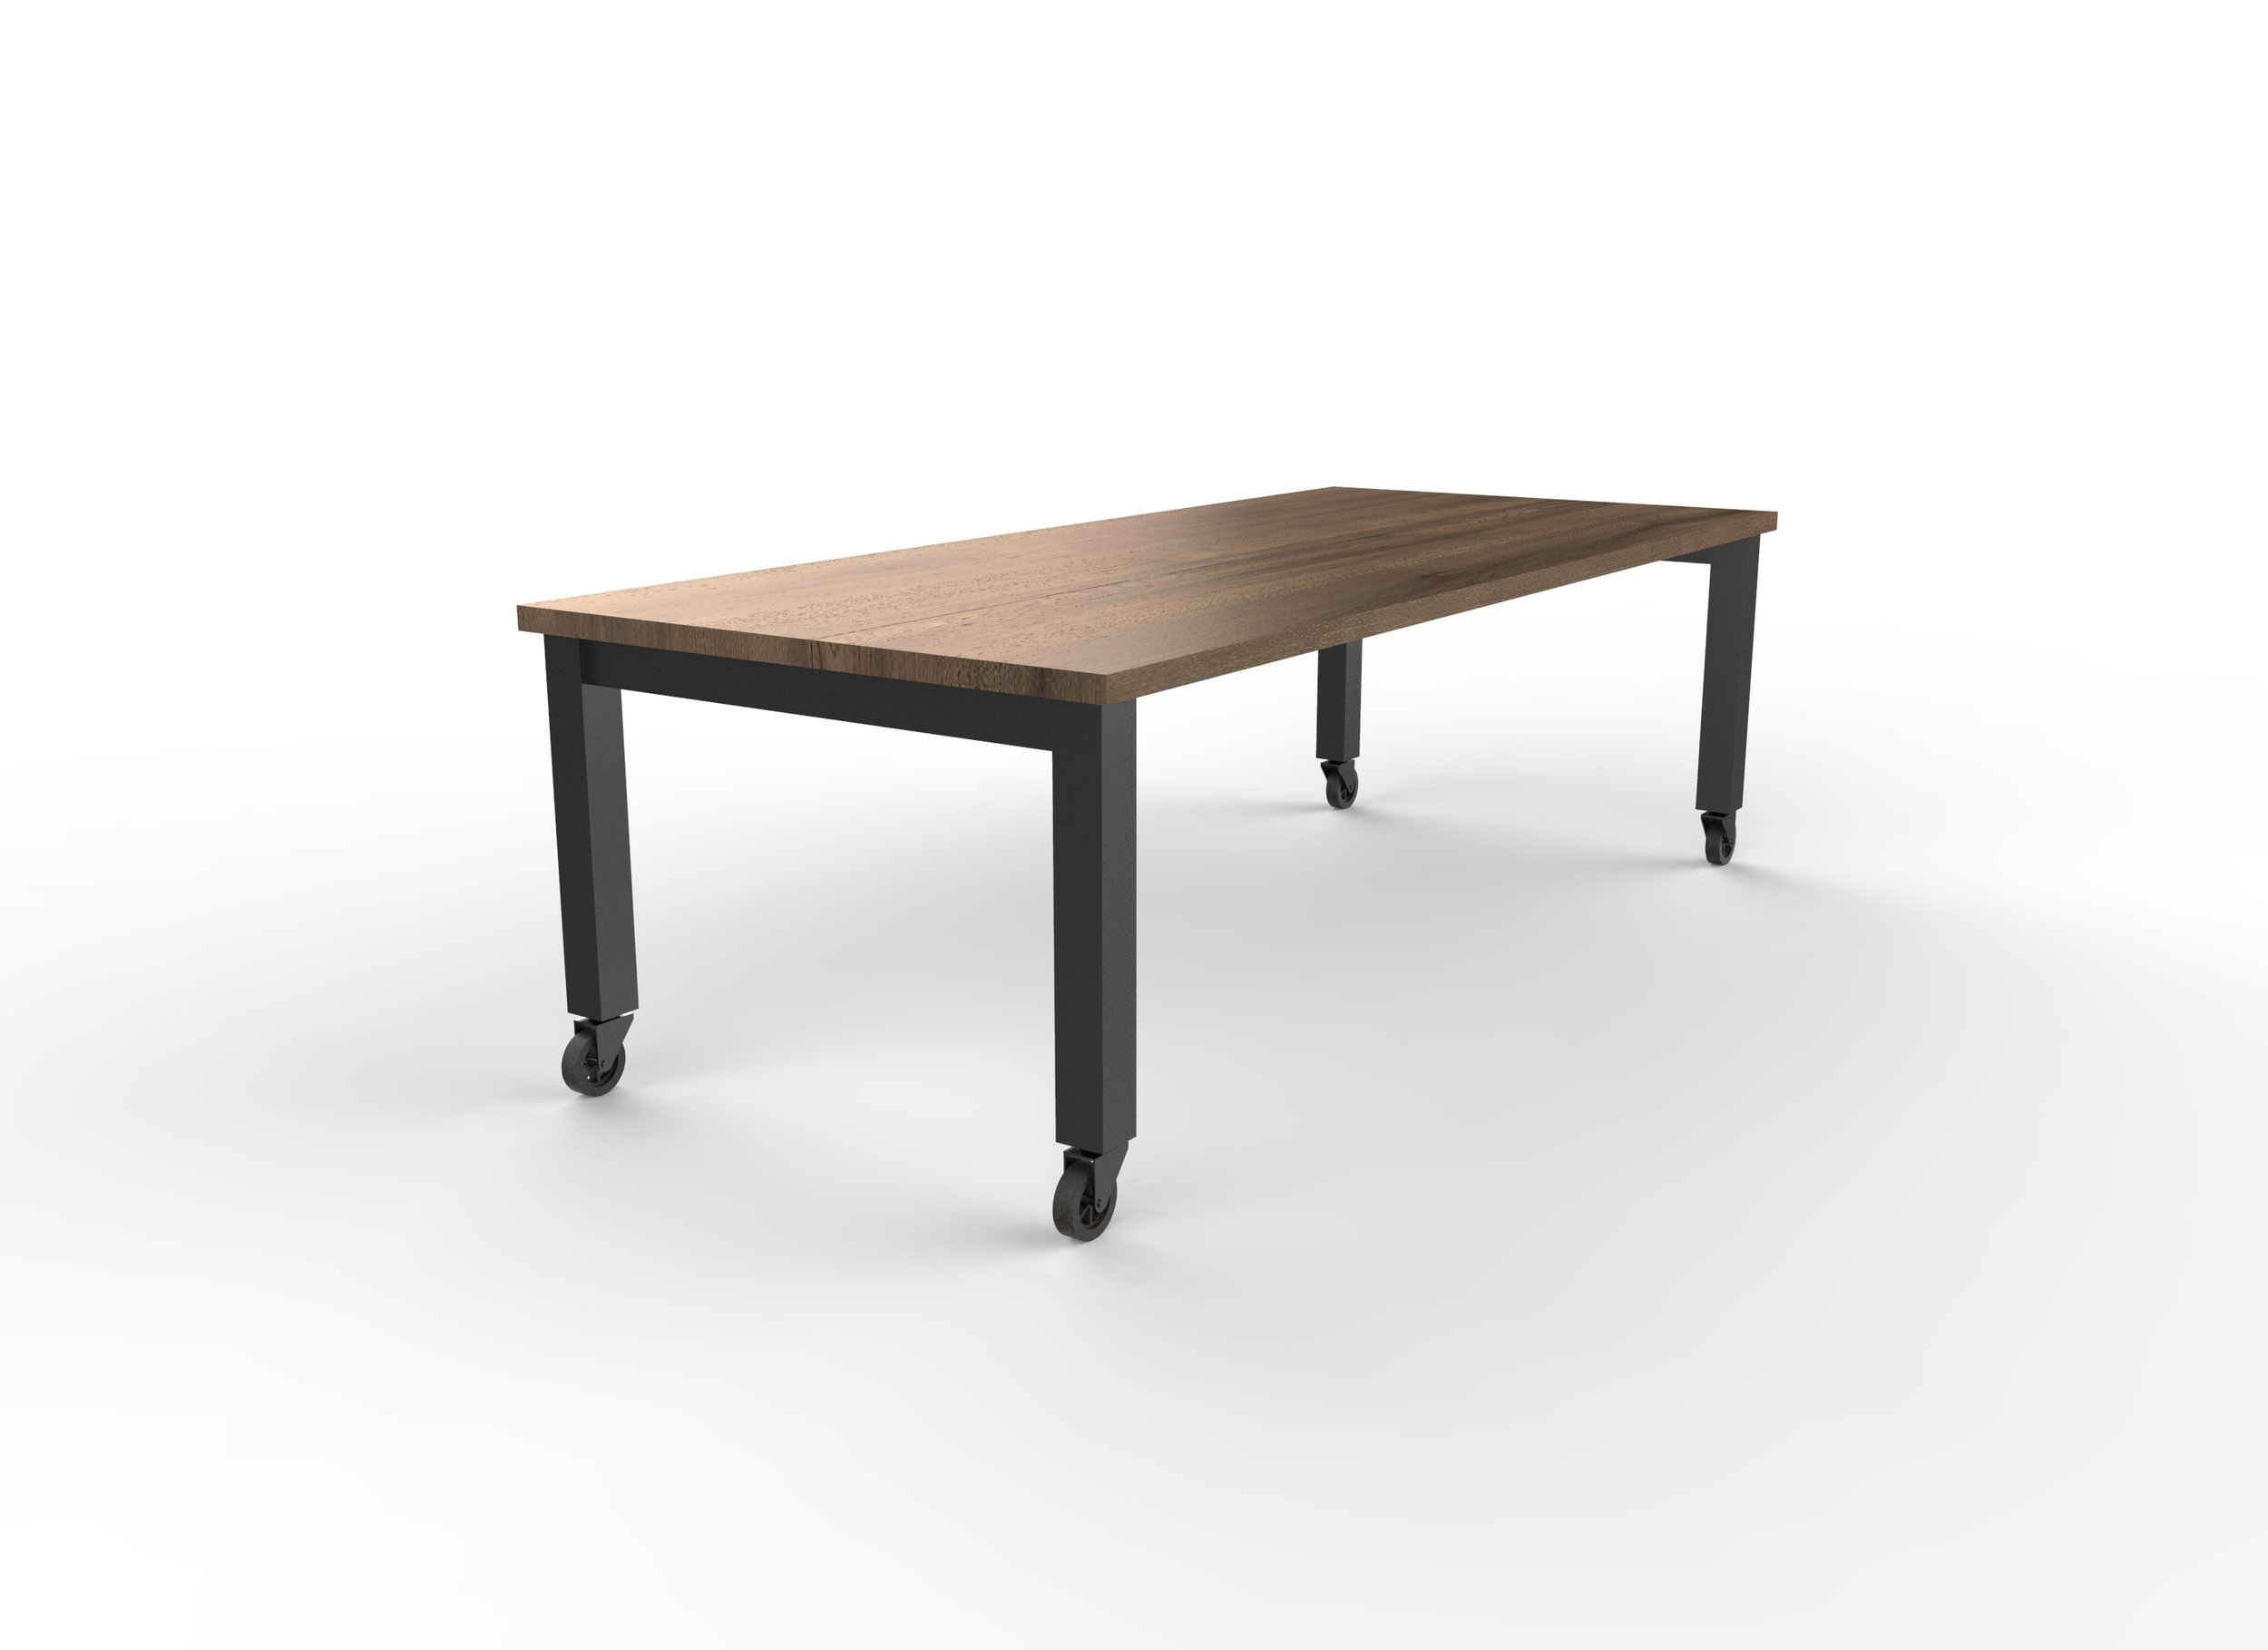 Square edge Walnut top in Clear, Matte Black base with casters